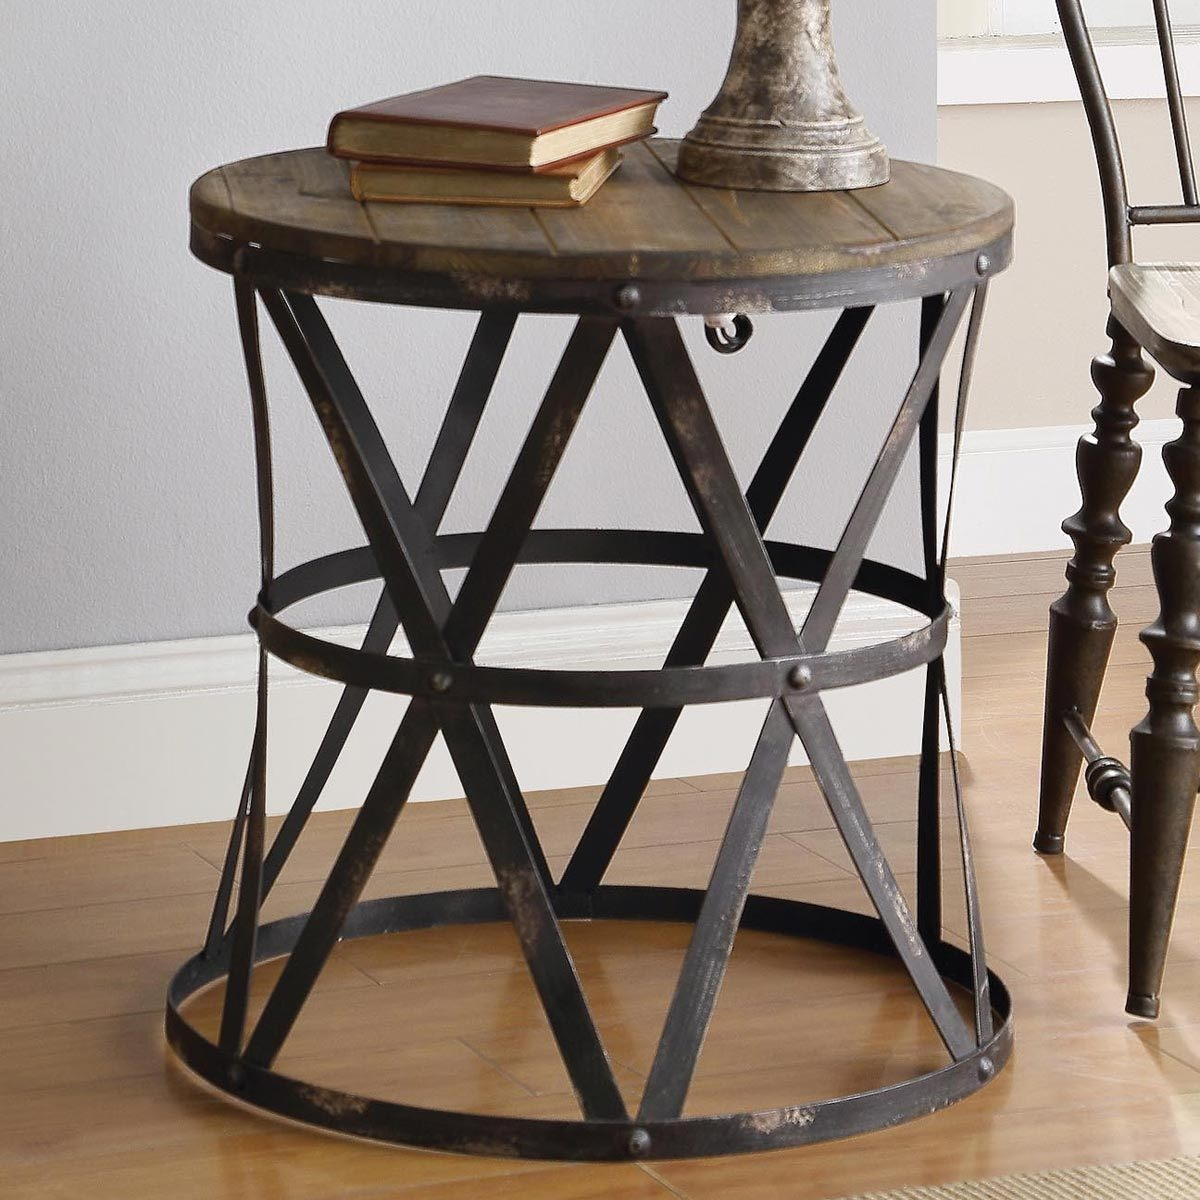 rustic coffee tables and end black forest decor modern side table better homes gardens accent gray west elm swing arm lamp tall narrow nightstand garden pool furniture clearance